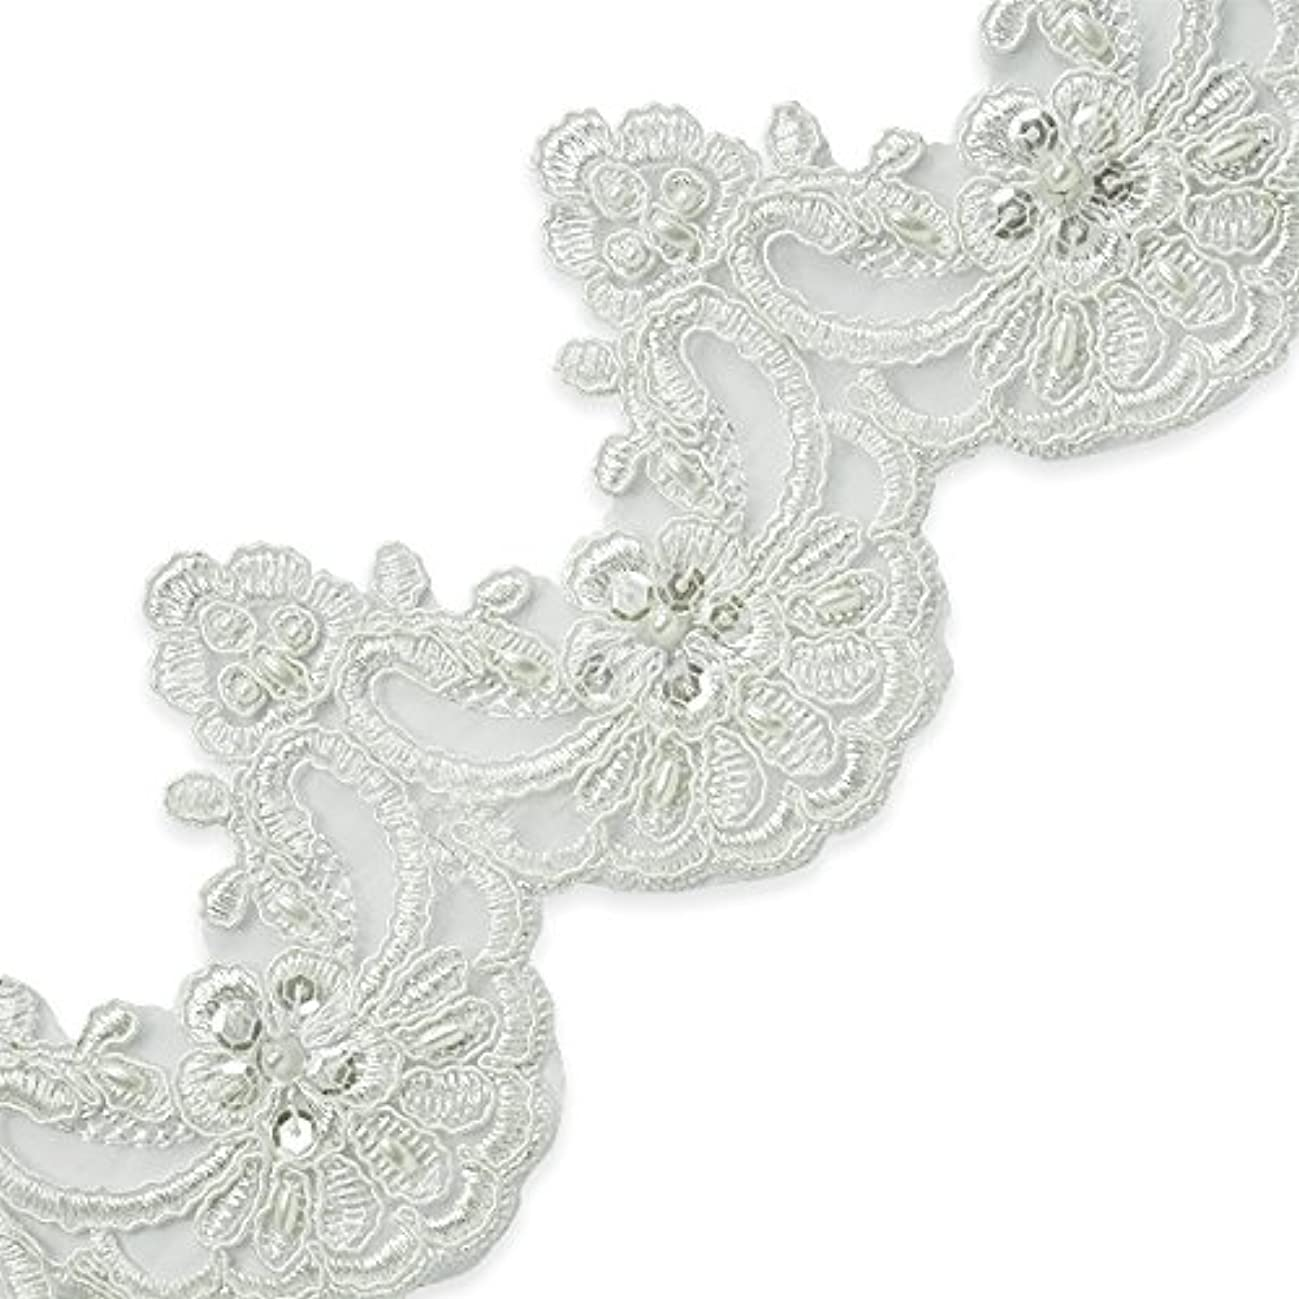 Expo International IR7071IV-14 14 Yds of Noreen Embr. Lace Trim w/Pearls & Sequin Ivory